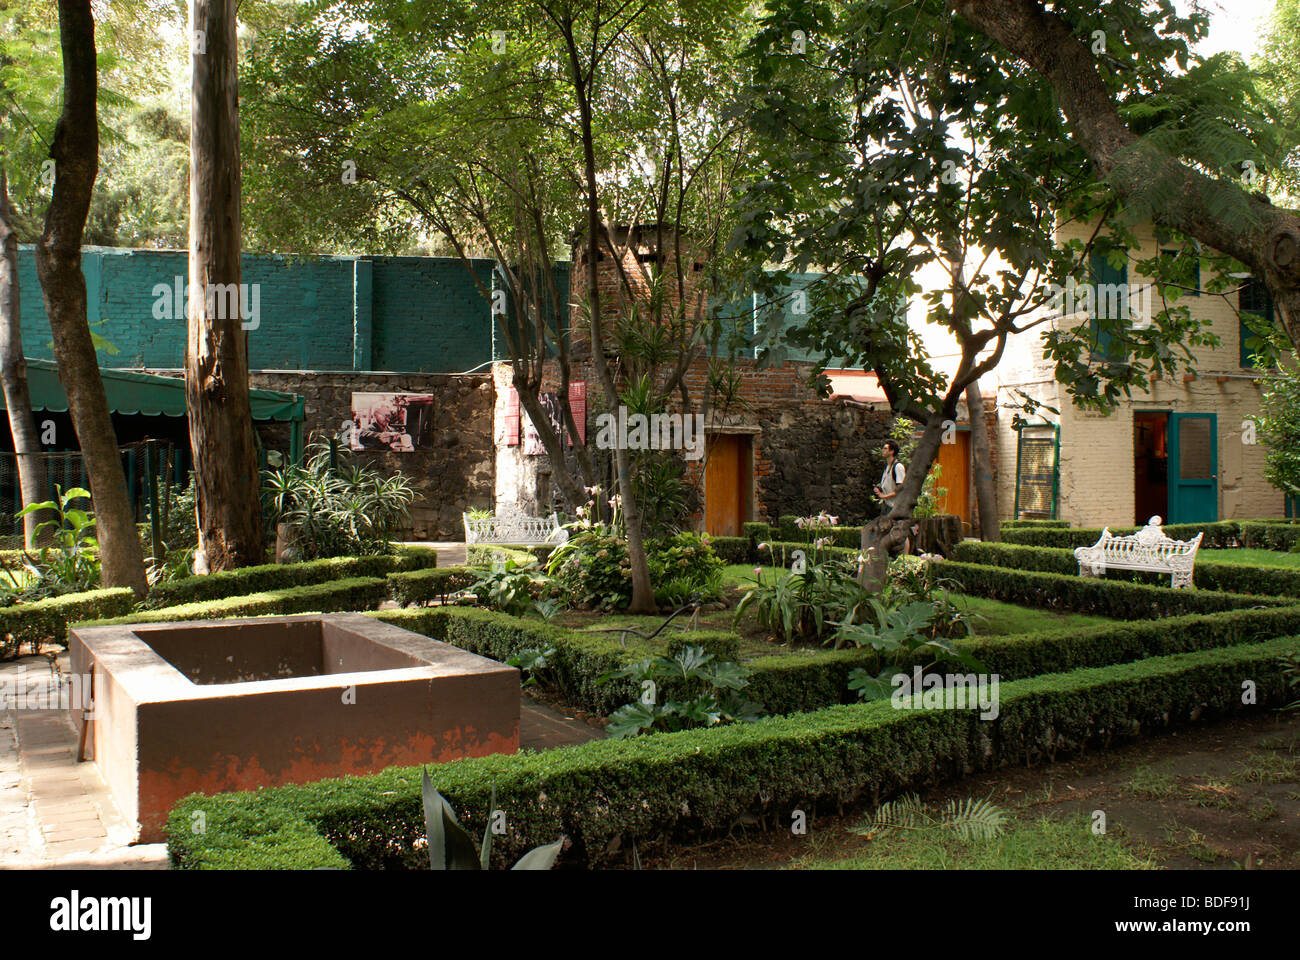 interior garden. Interior garden of the Museo Casa de Leon Trotsky or House  Museum in Coyoacan Mexico City